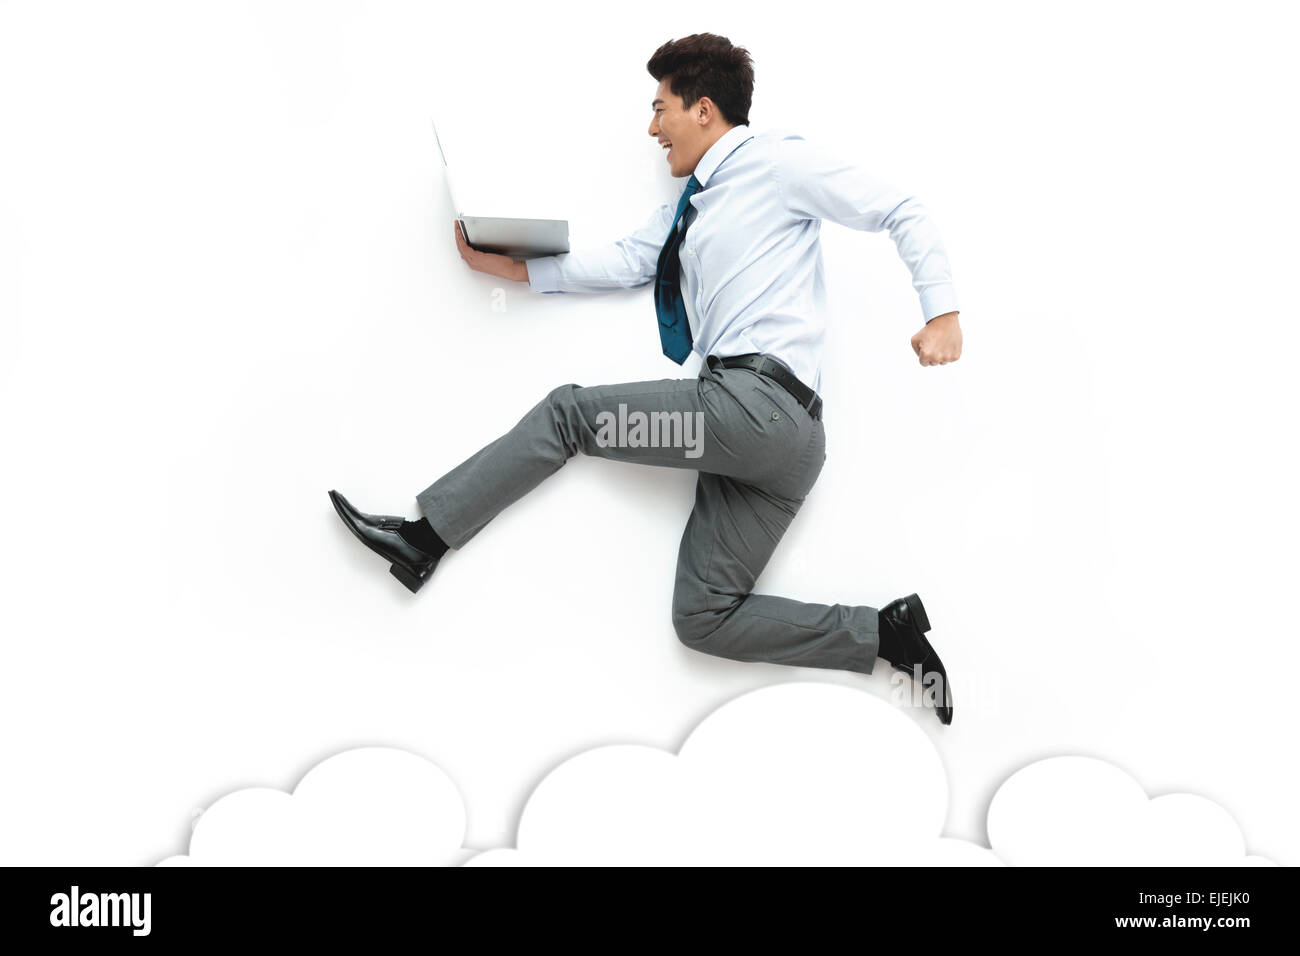 Business men holding laptop running on a white background Stock Photo